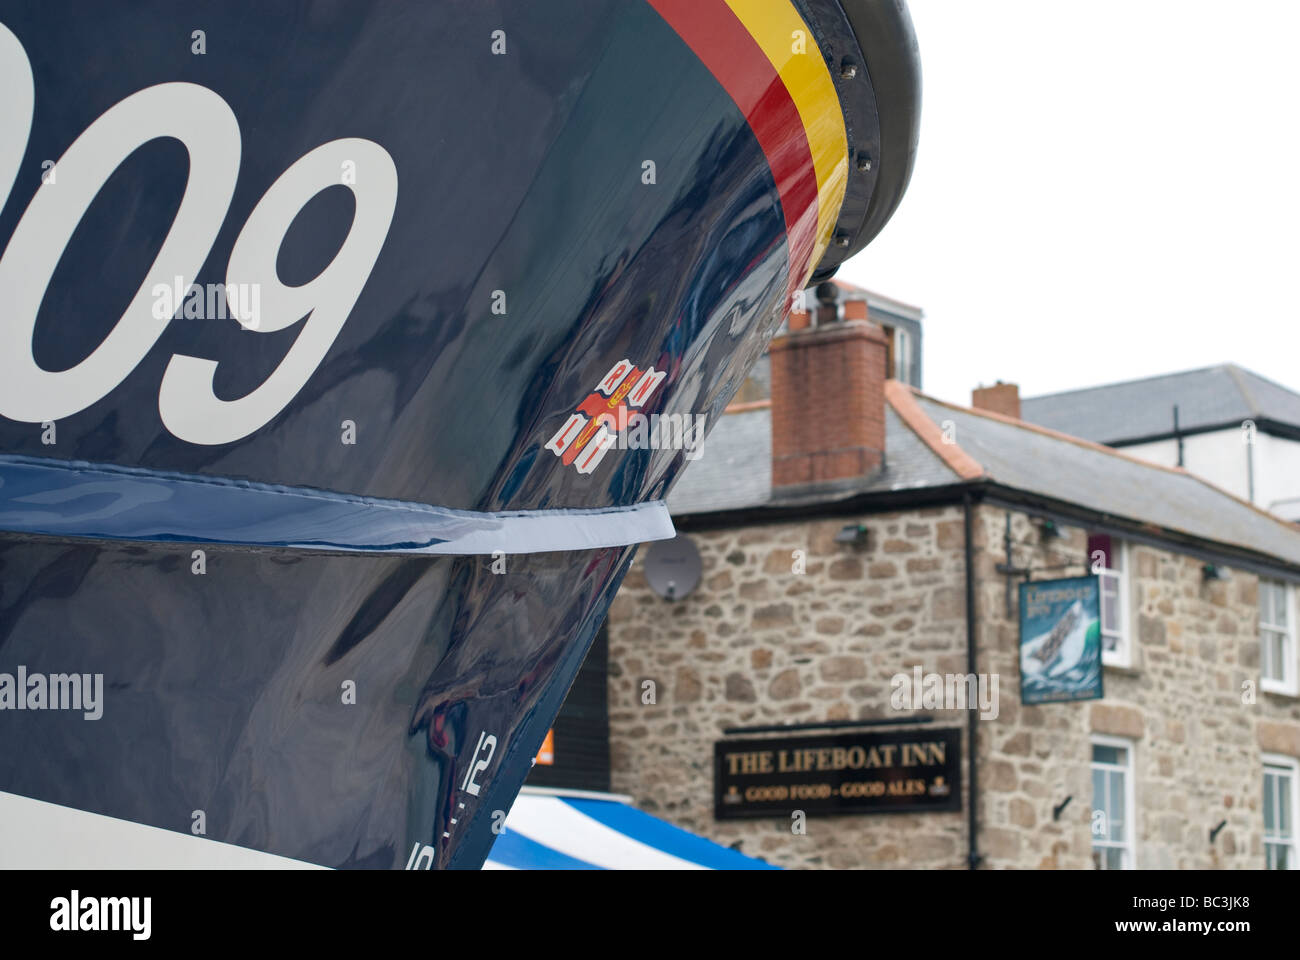 The Lifeboat Inn St Ives - Stock Image